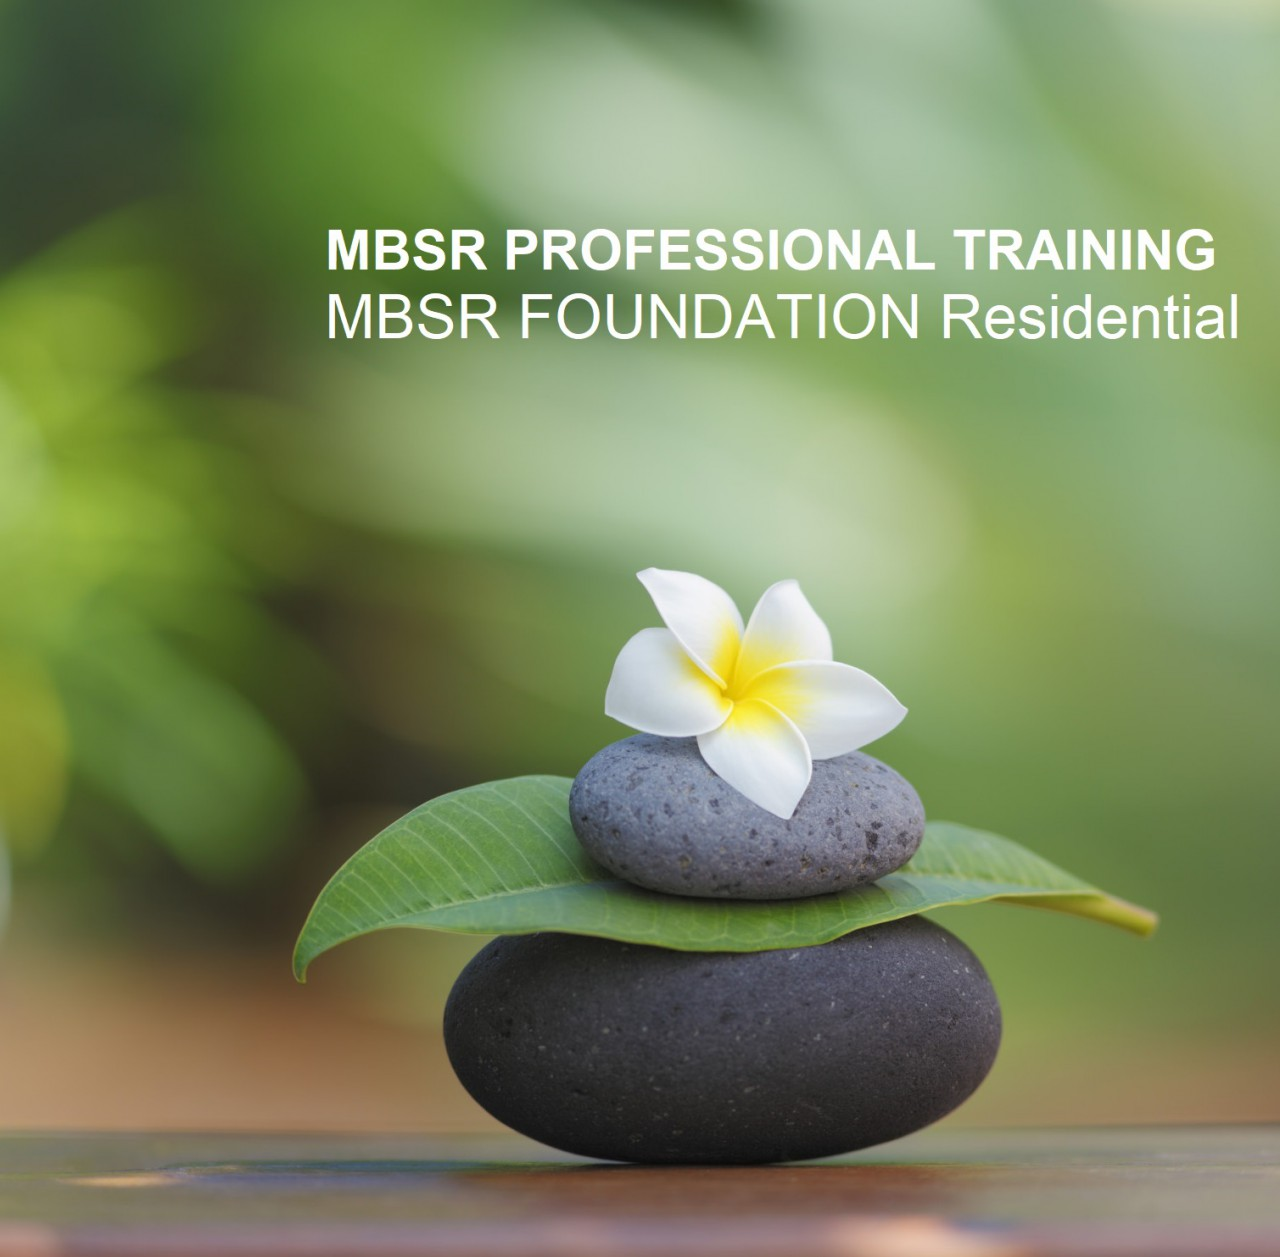 MBSR_TRAINING_foundation_residential.jpg